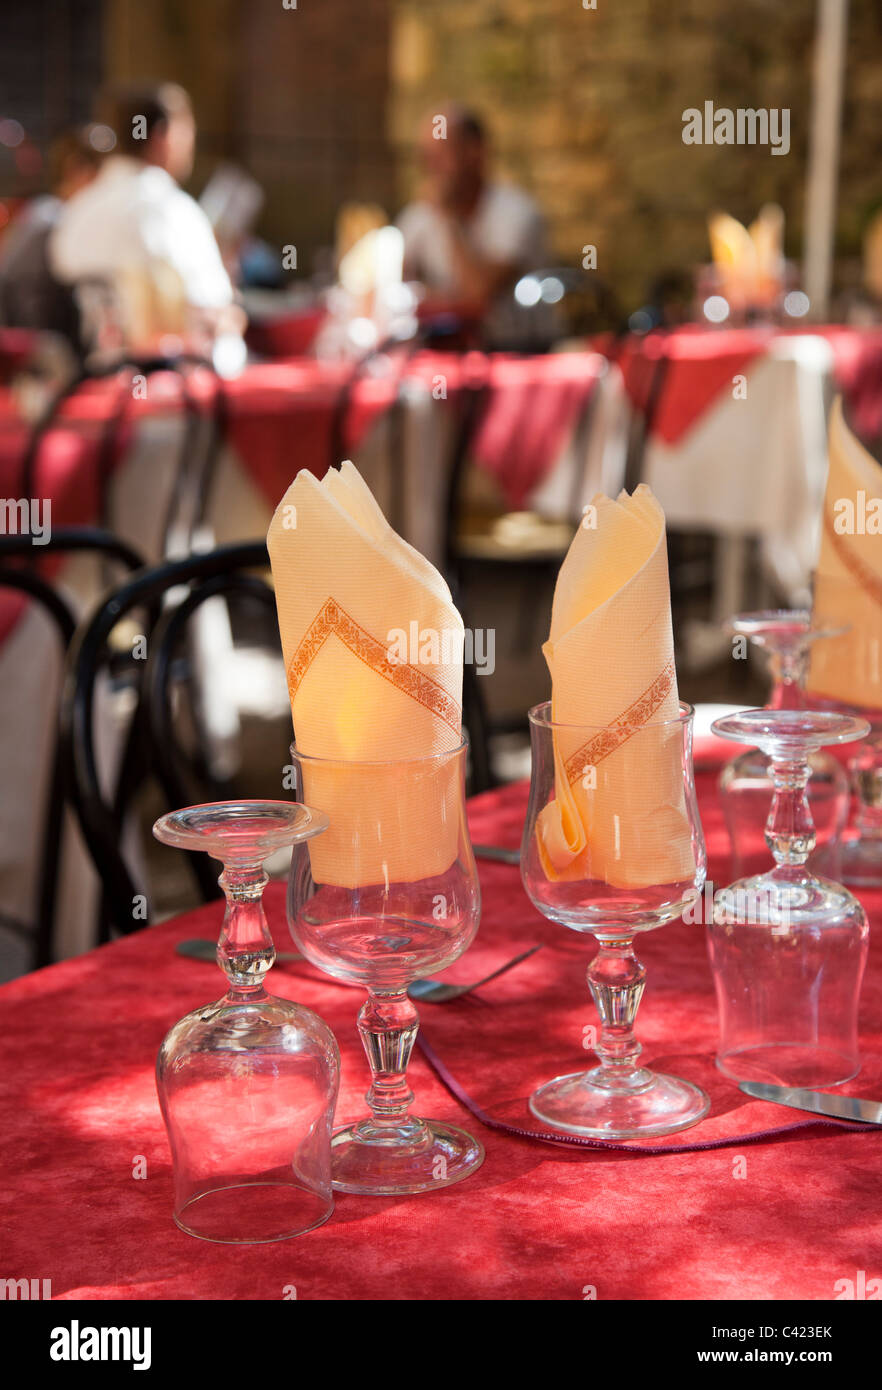 Glasses with napkins in table setting with people in background of restaurant Sarlat-la-Caneda Dordogne France - Stock Image